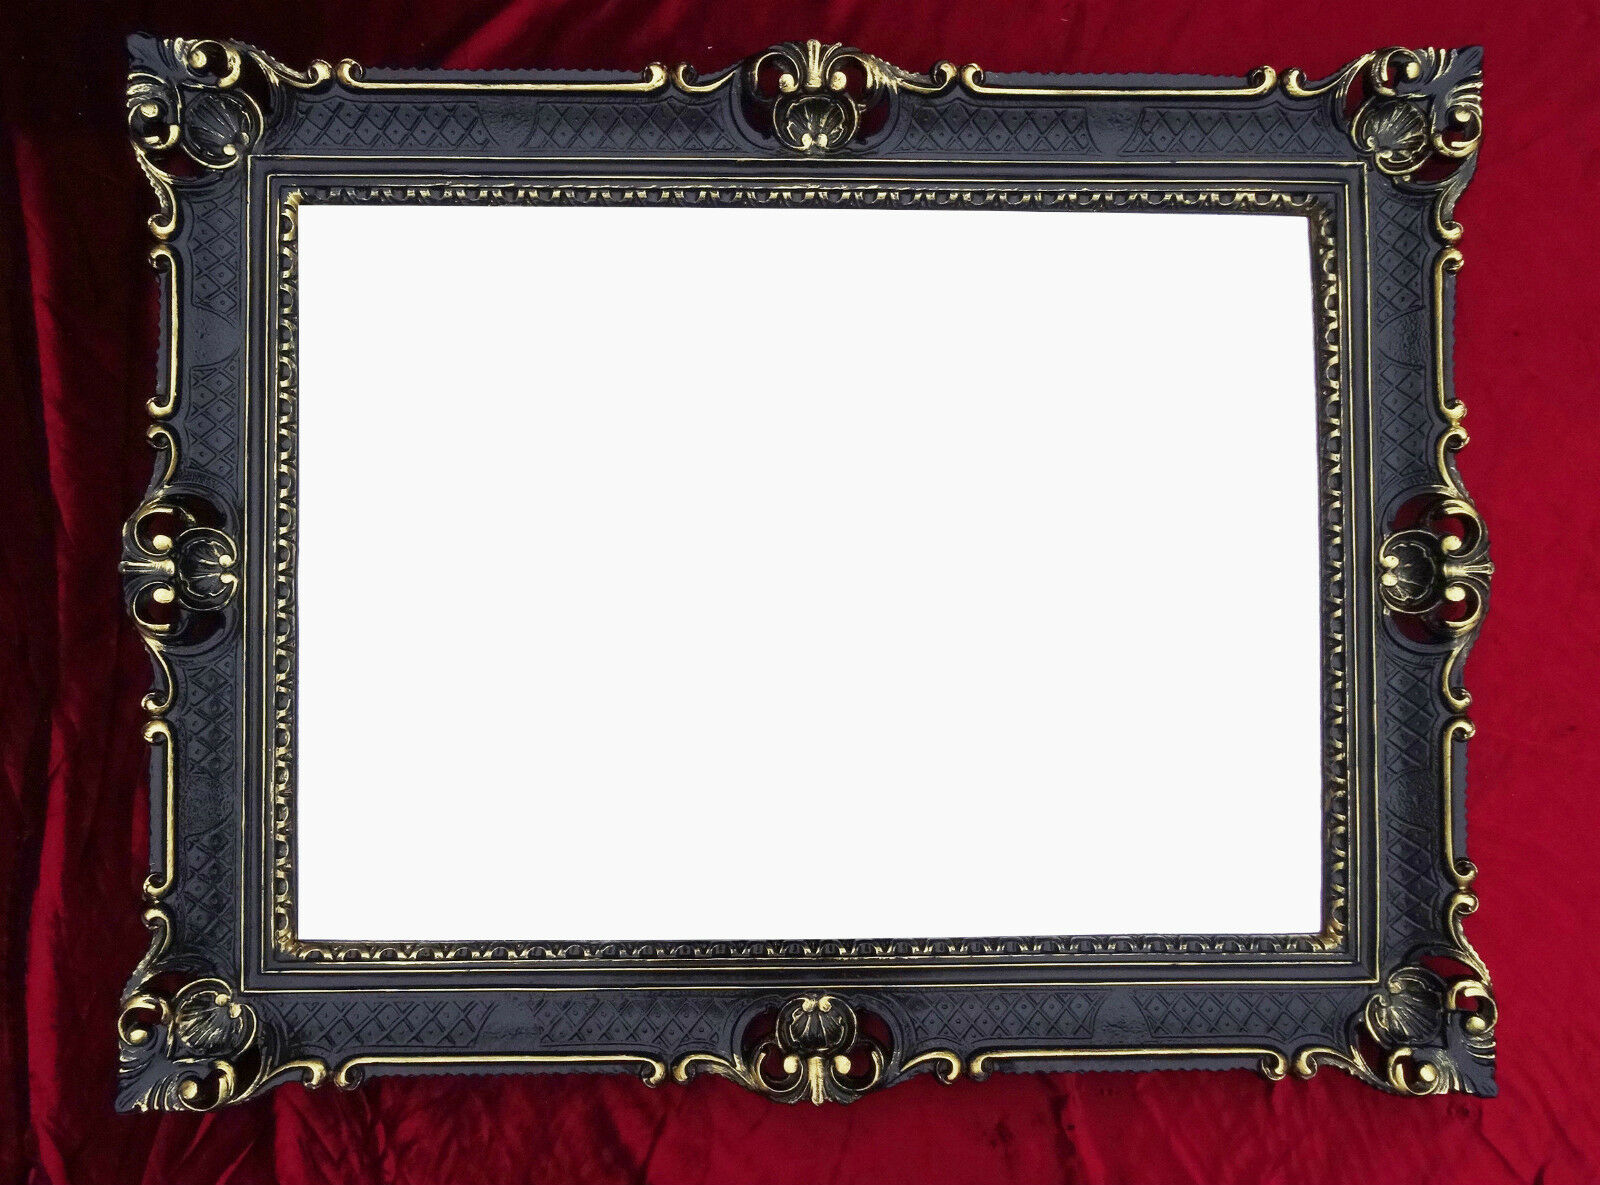 Wall mirror black gold antique baroque rococo 90x70 frame for Miroir 90 x 70